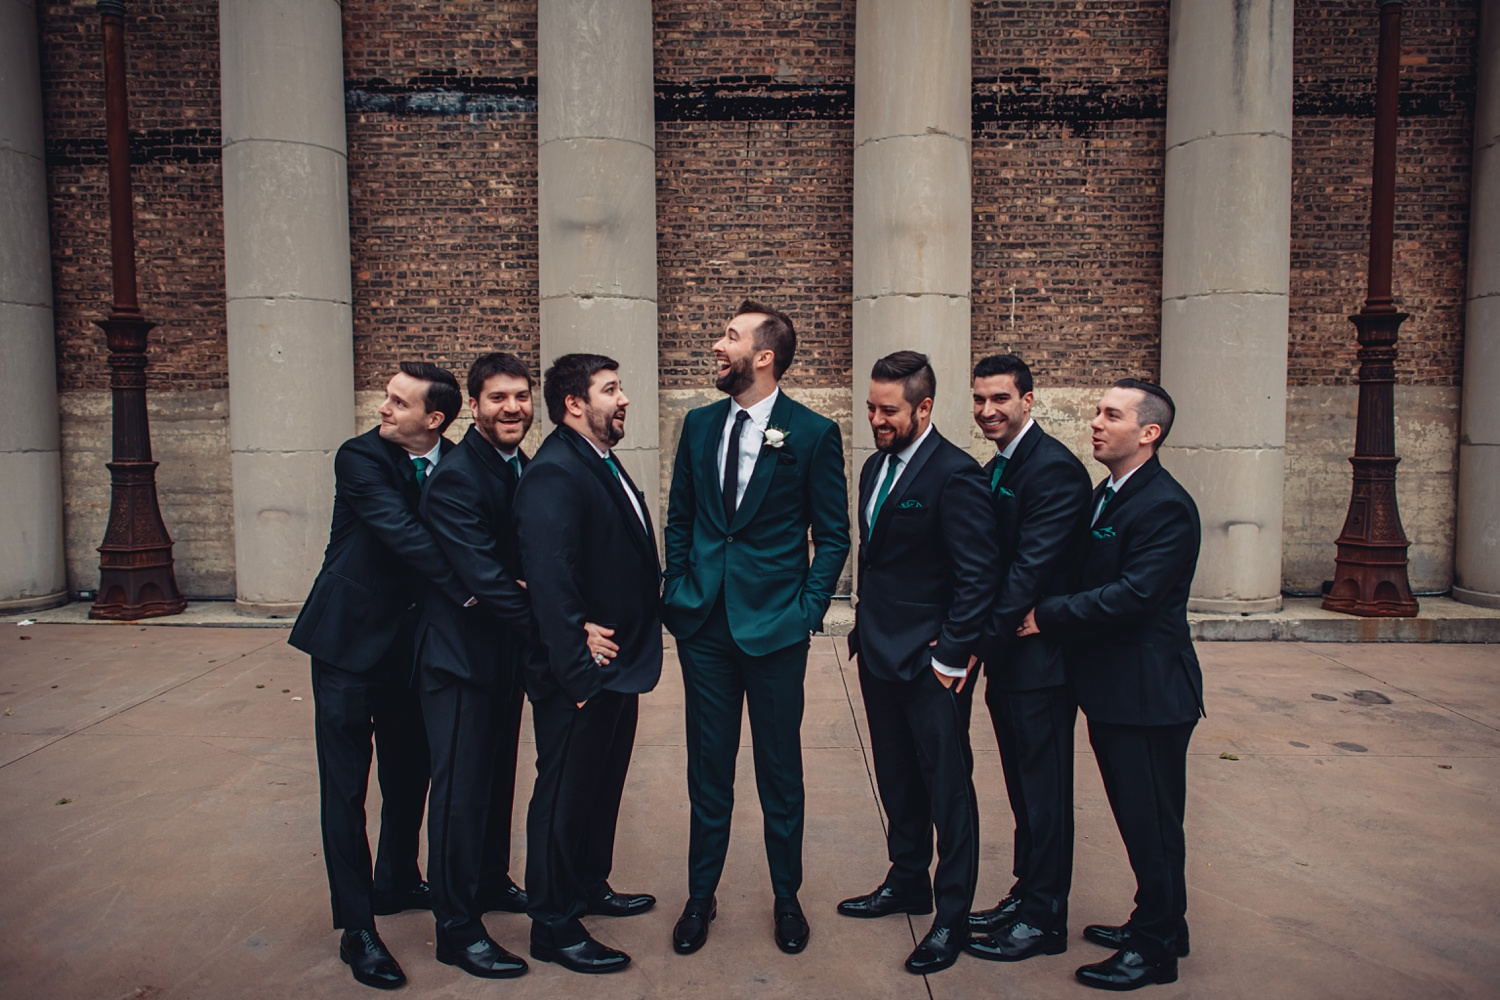 Artifact Events Fall Chicago Wedding - The Adamkovi groomsmen